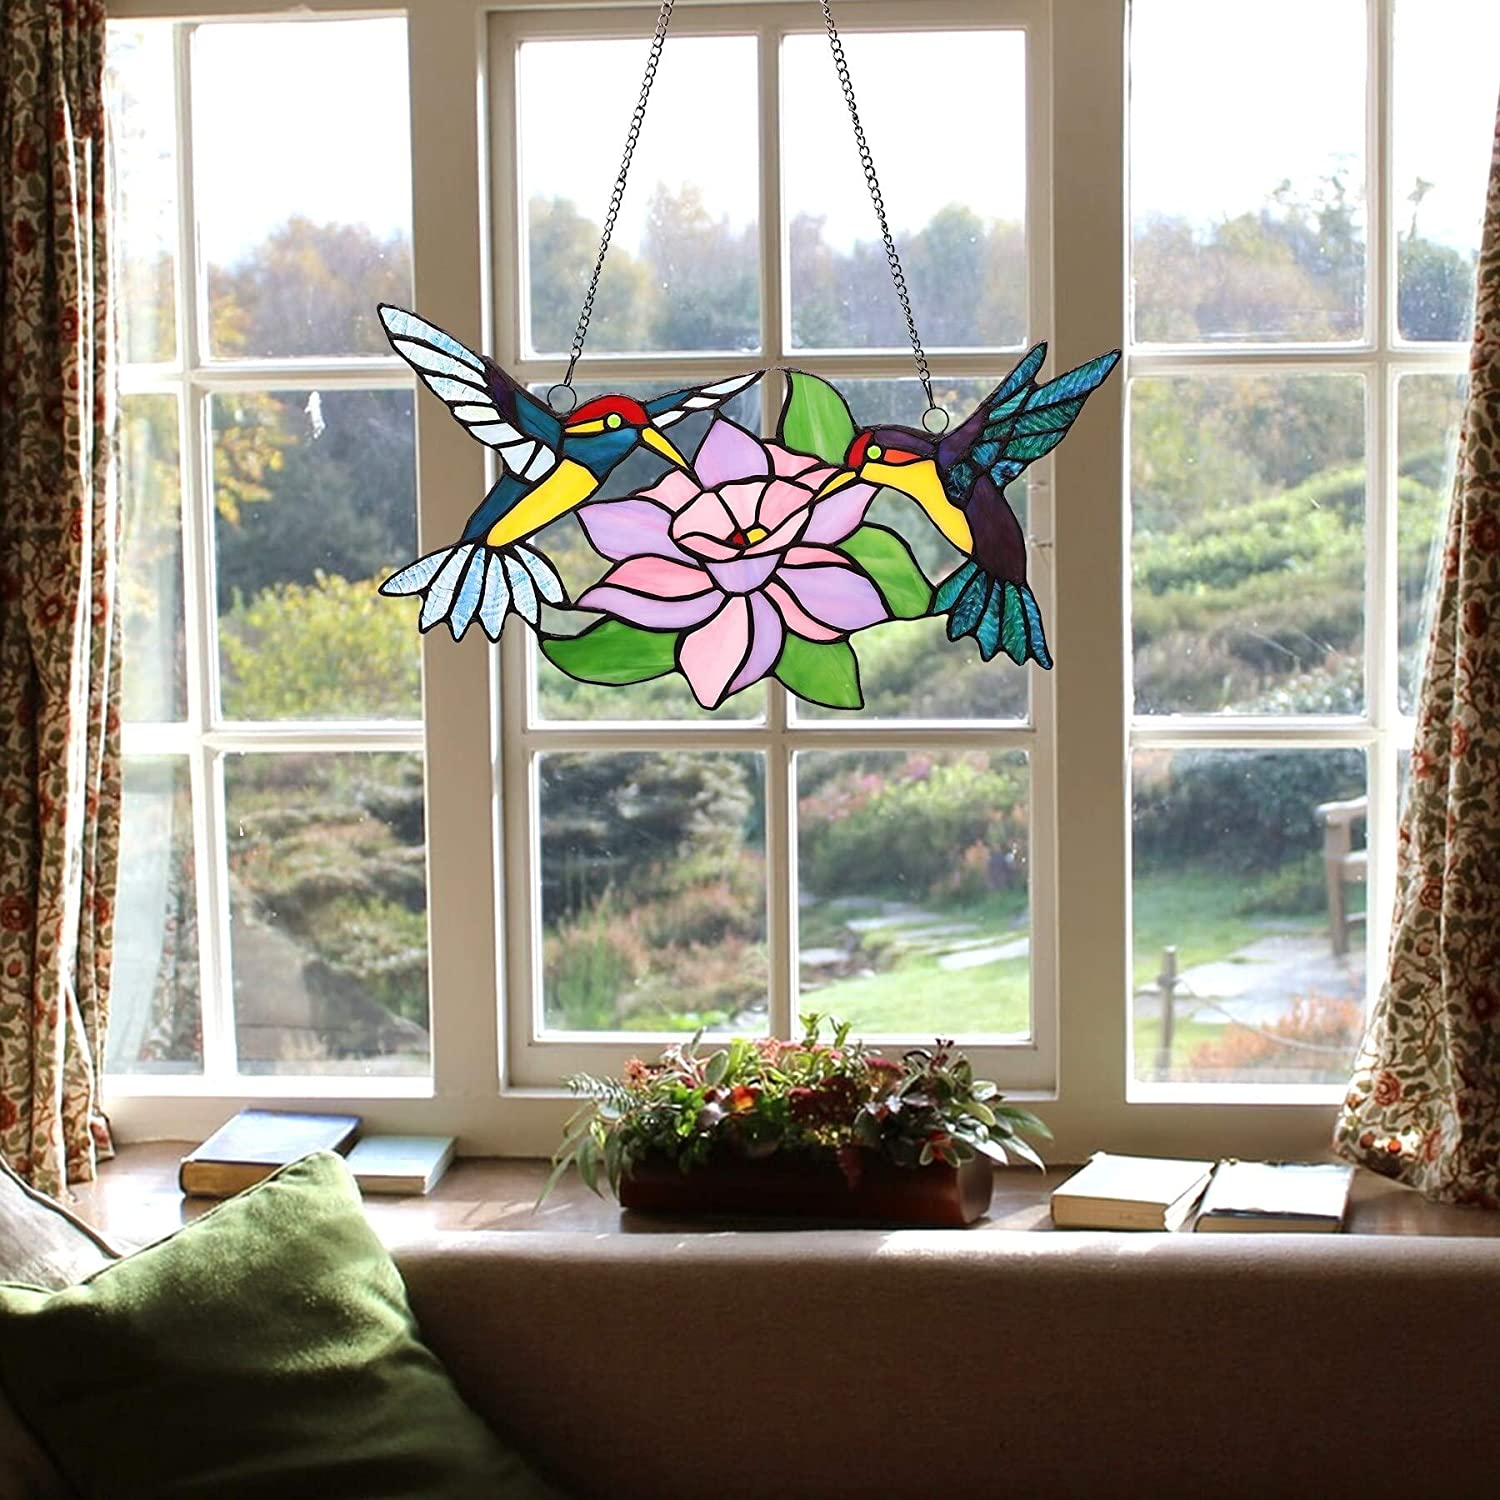 UKN Columbus Mall Stained Glass Hummingbirds with Gr Window Blue Panel Over item handling Blossom